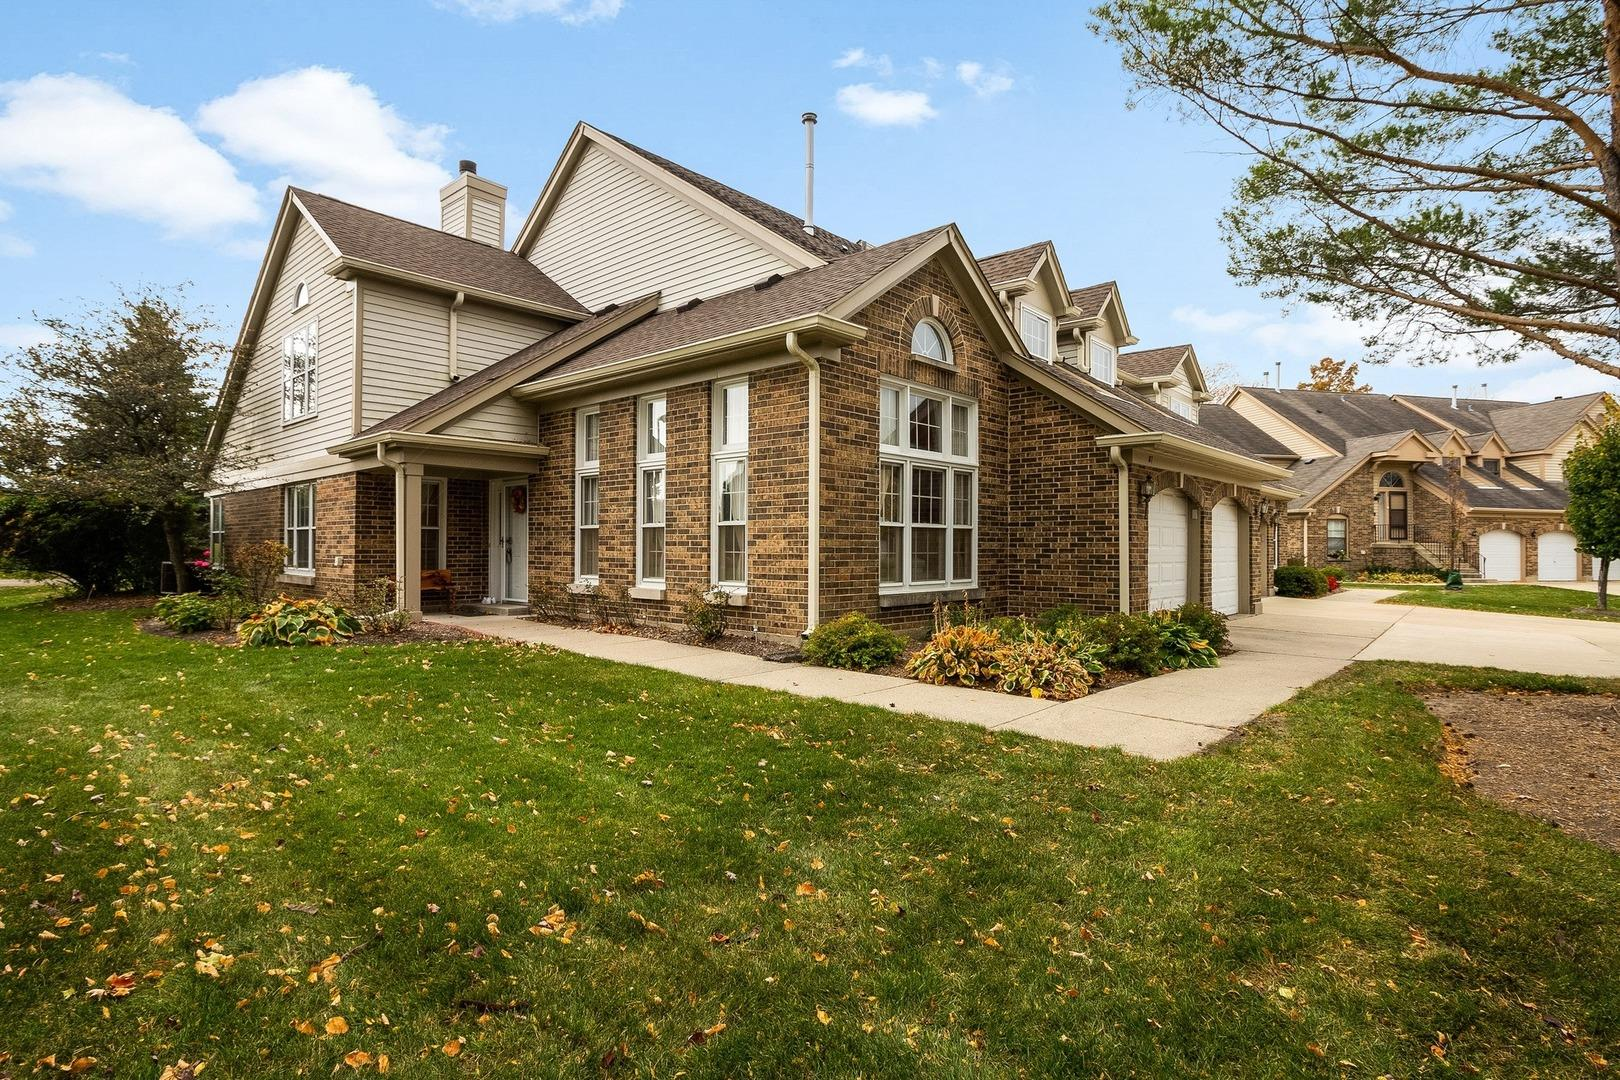 87 Willow Parkway #70-1, Buffalo Grove, IL 60089 - #: 11073519